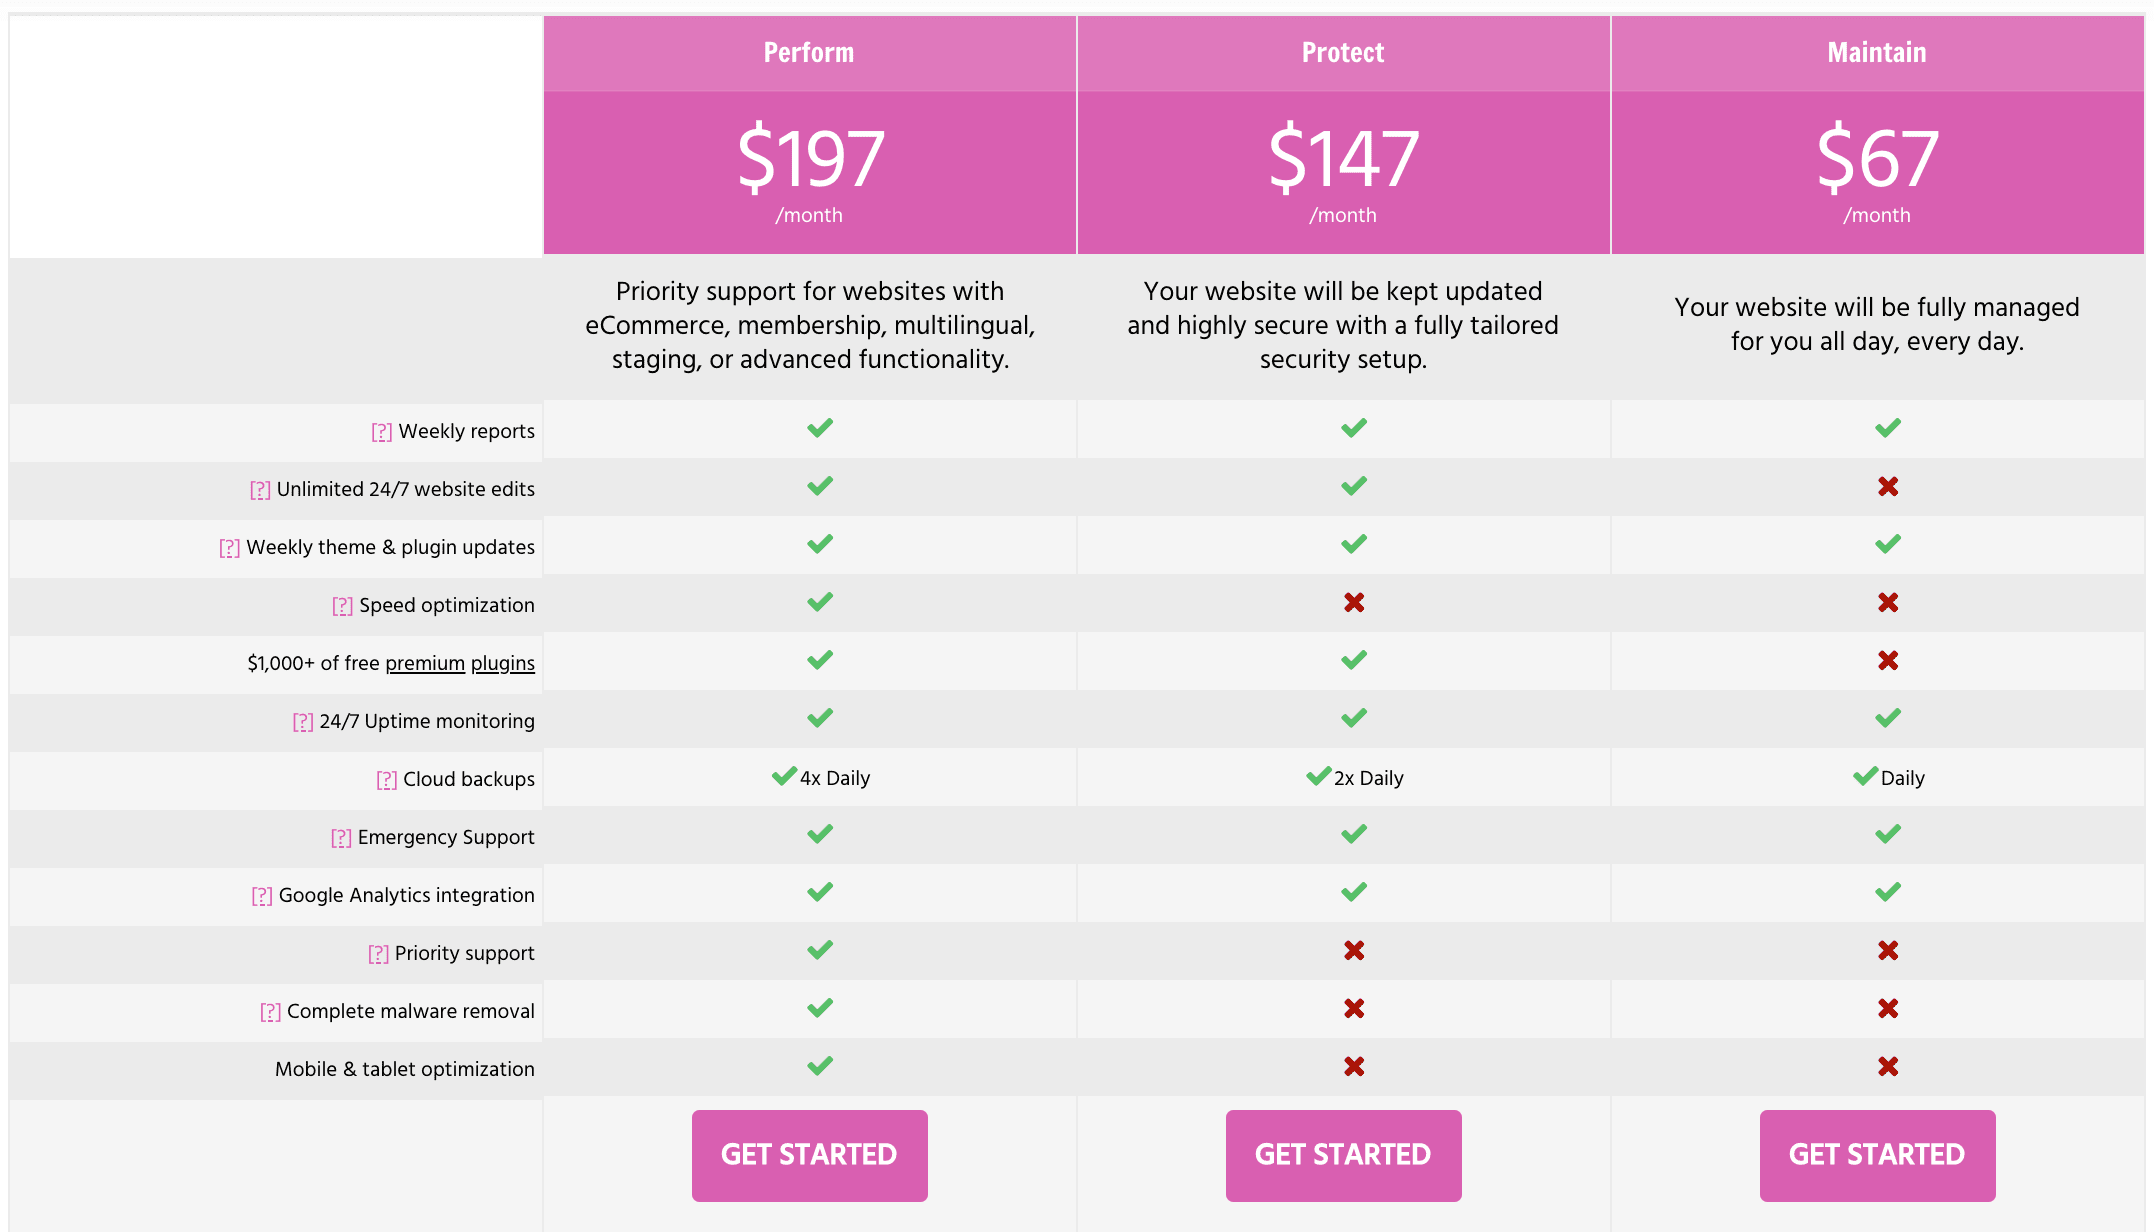 WP Buffs' tiered pricing model.